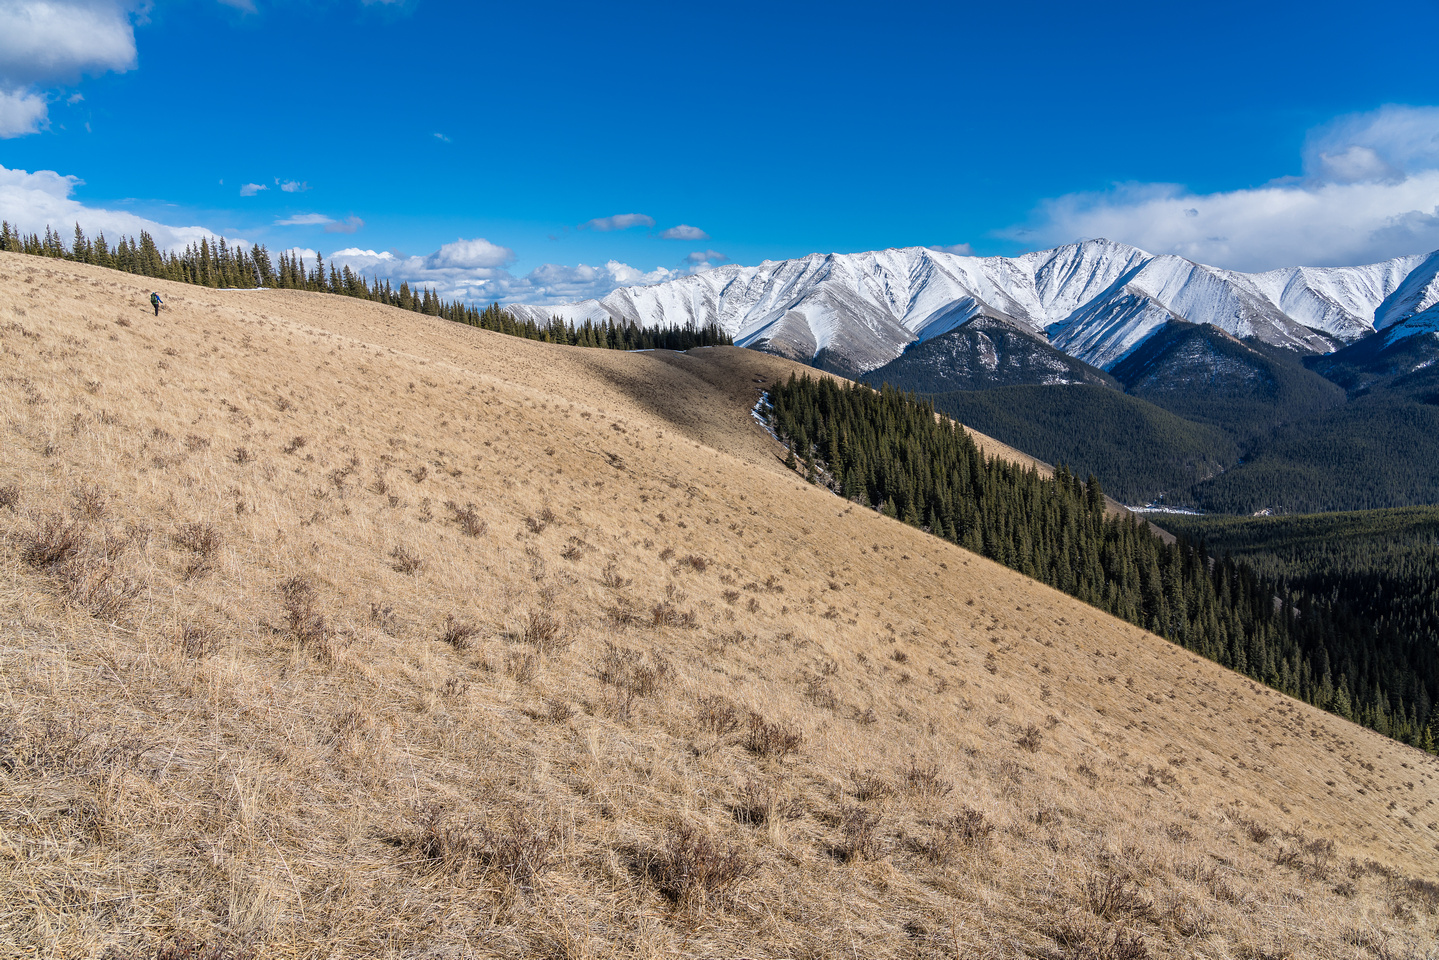 Hiking up the grassy ridge. Winchester Ridge in the distance here.